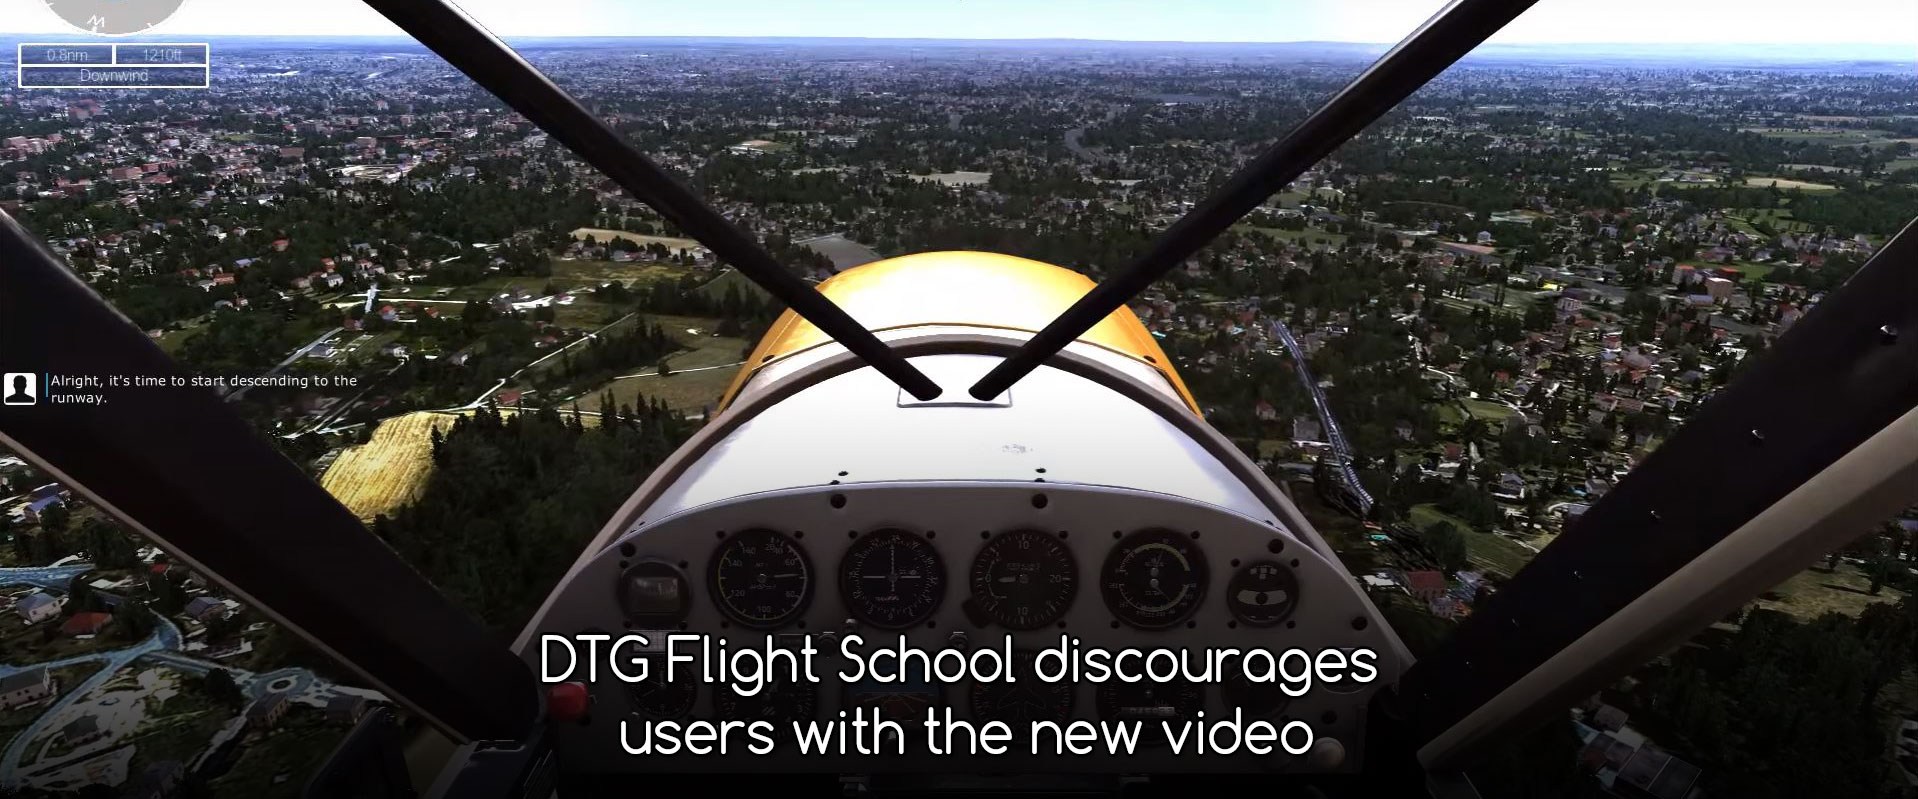 DTG Flight School discourages users with the new video